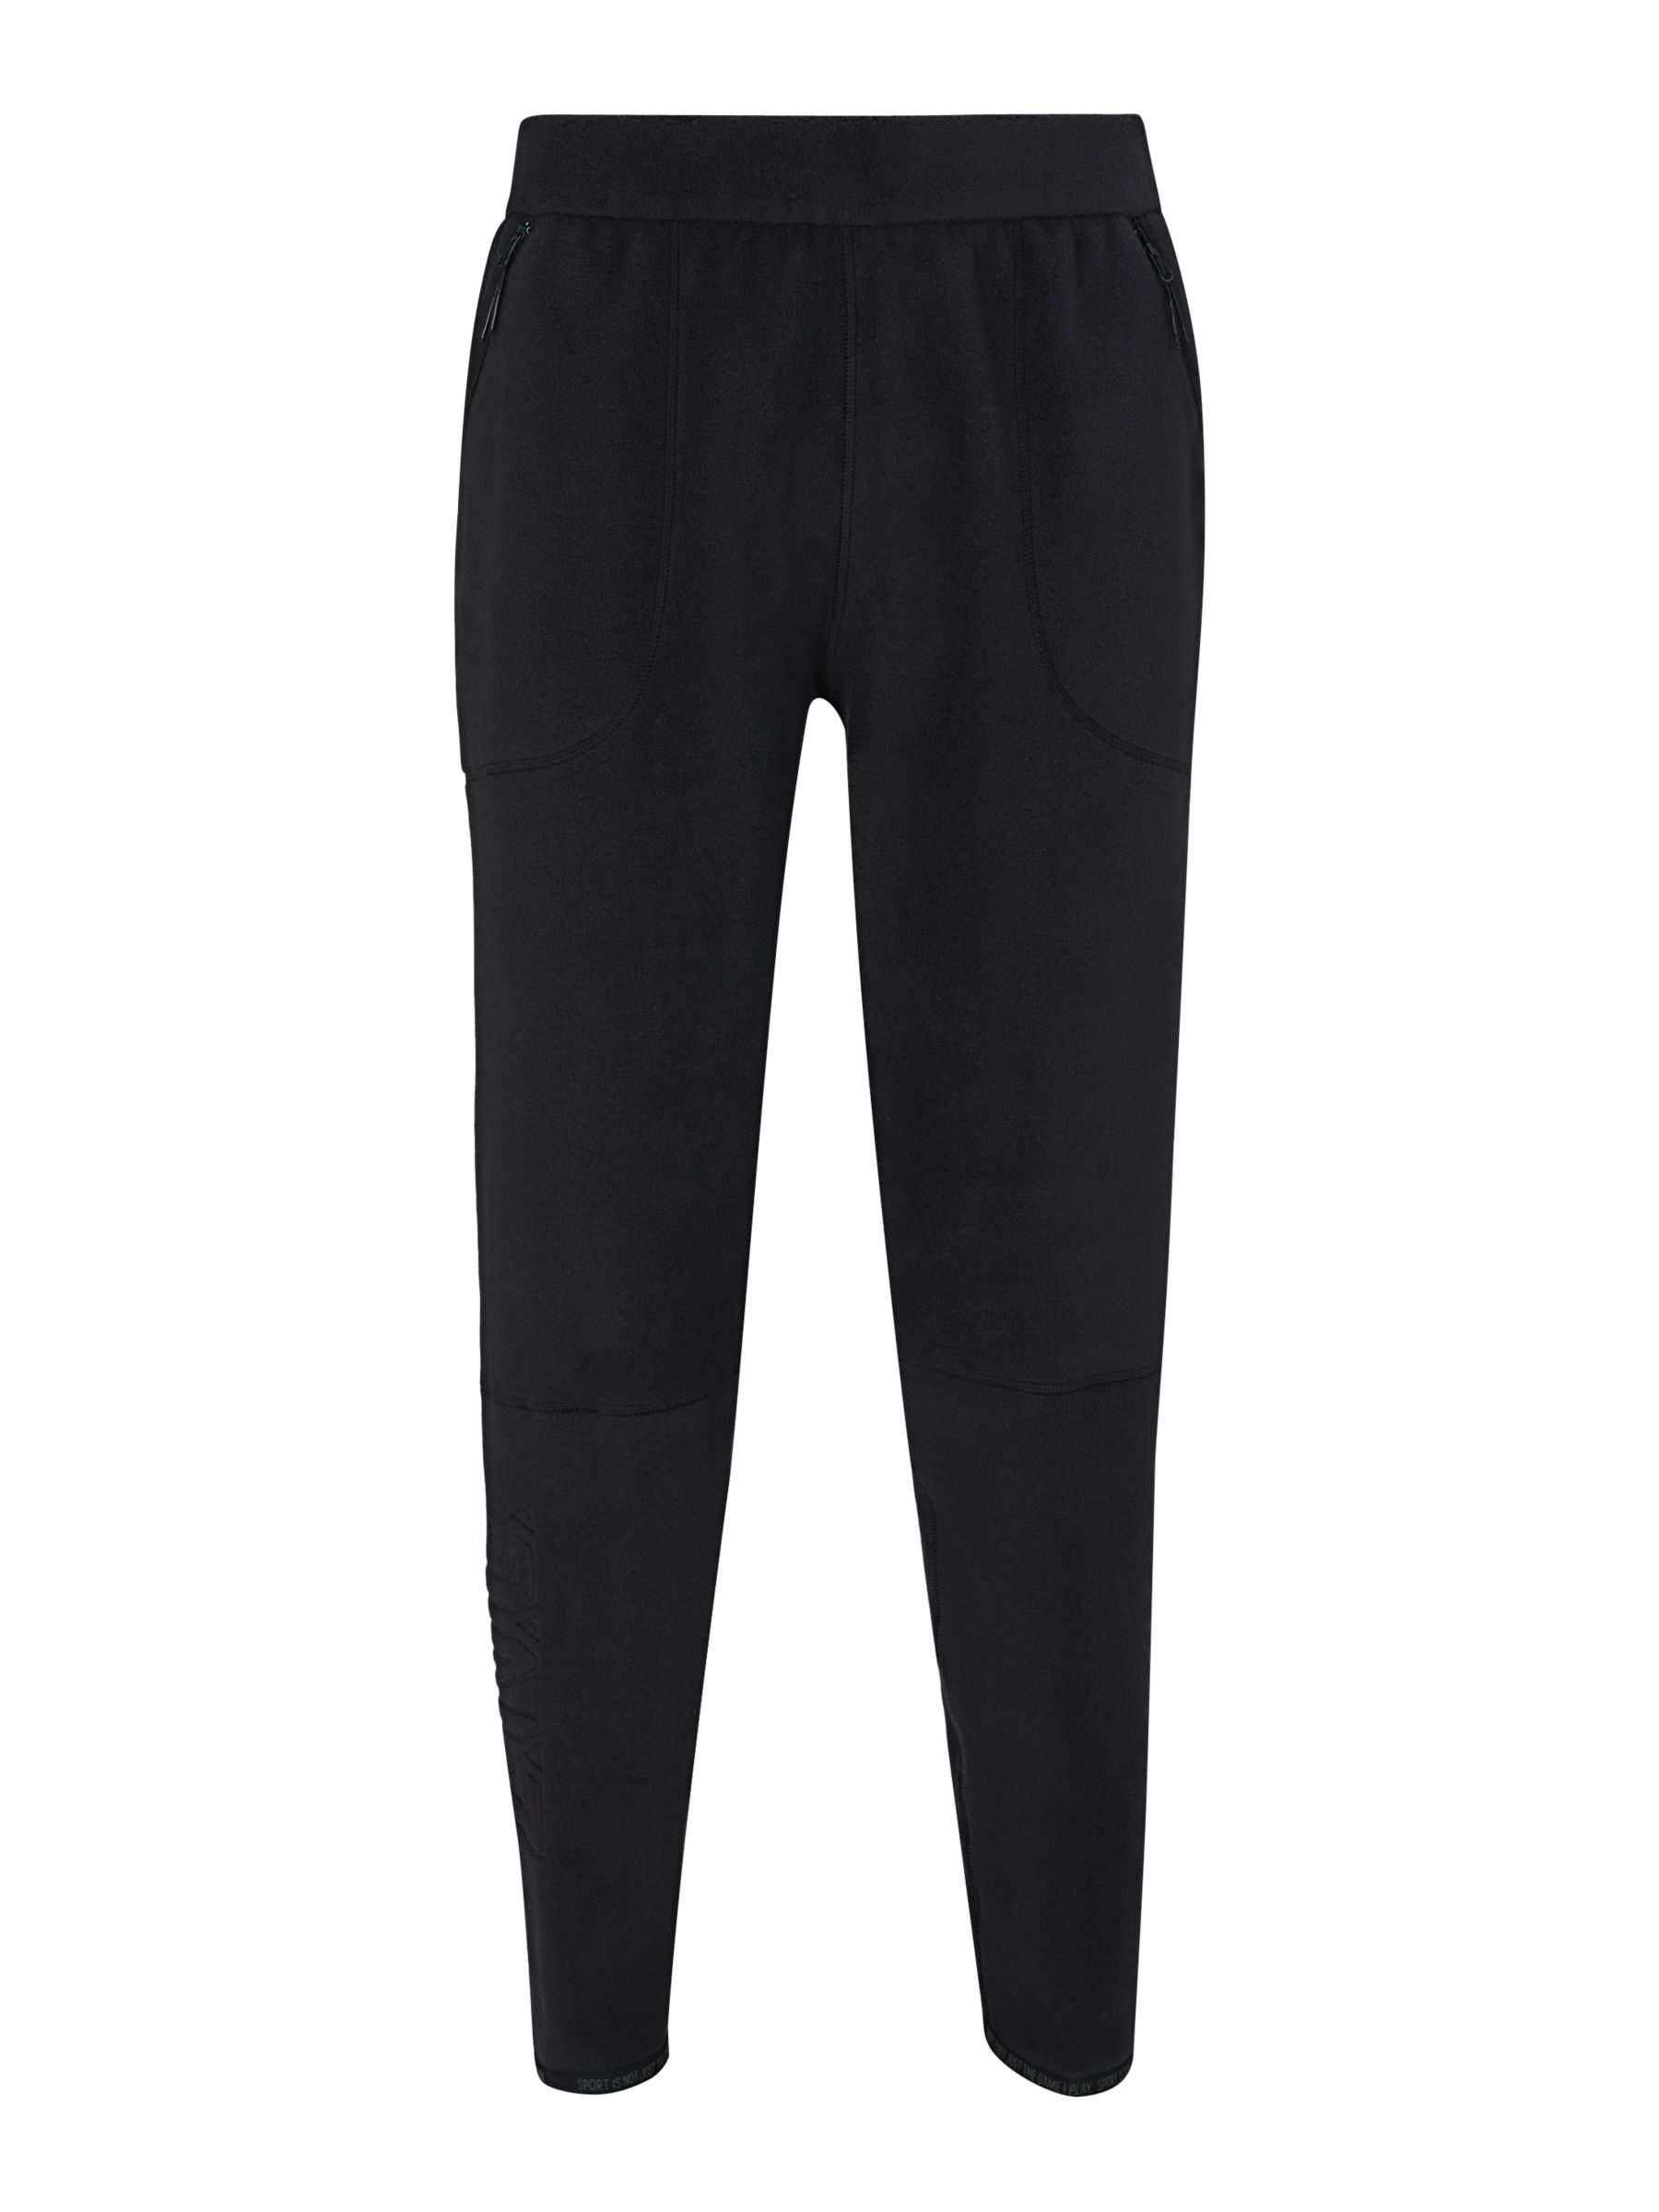 Buy adidas Z.N.E Tapered Tracksuit Bottoms, Black, S Online at johnlewis.com